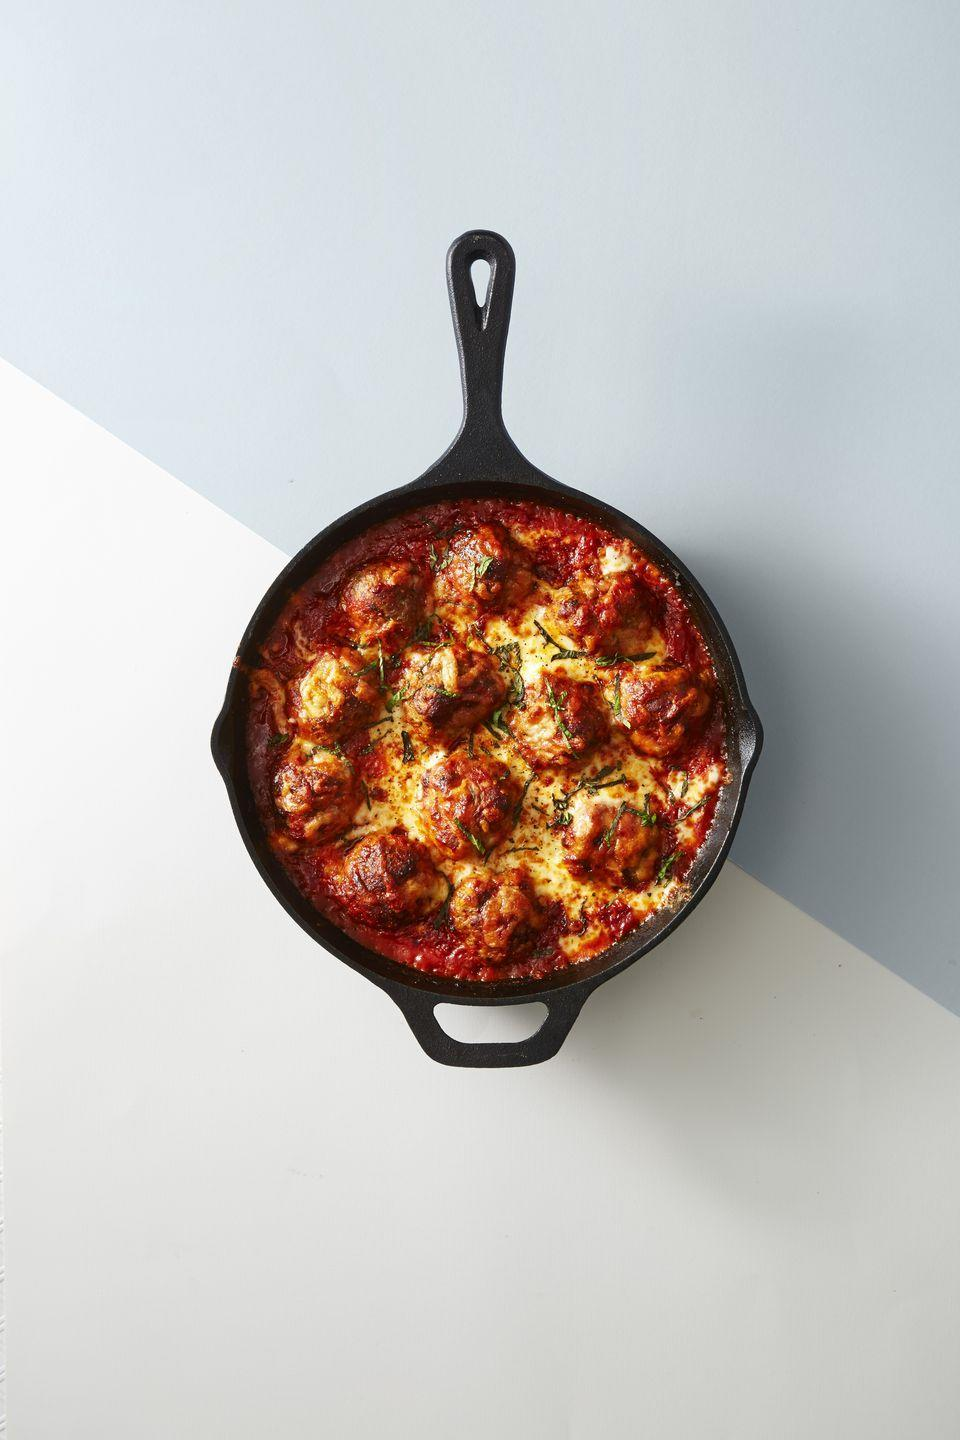 "<p>Take your parm to the next level with this meatball recipe, where cheese is stuffed on the inside and generously layered on top. It's an ultimate comfort dinner. </p><p><a href=""https://www.goodhousekeeping.com/food-recipes/a42821/doubly-cheesy-meatball-bake-recipe/"" rel=""nofollow noopener"" target=""_blank"" data-ylk=""slk:Get the recipe for Doubly Cheesy Meatball Bake »"" class=""link rapid-noclick-resp""><span class=""redactor-invisible-space""><em><span class=""redactor-invisible-space""><span class=""redactor-invisible-space"">Get the recipe for Doubly Cheesy Meatball Bake »</span> </span></em></span></a><br></p>"